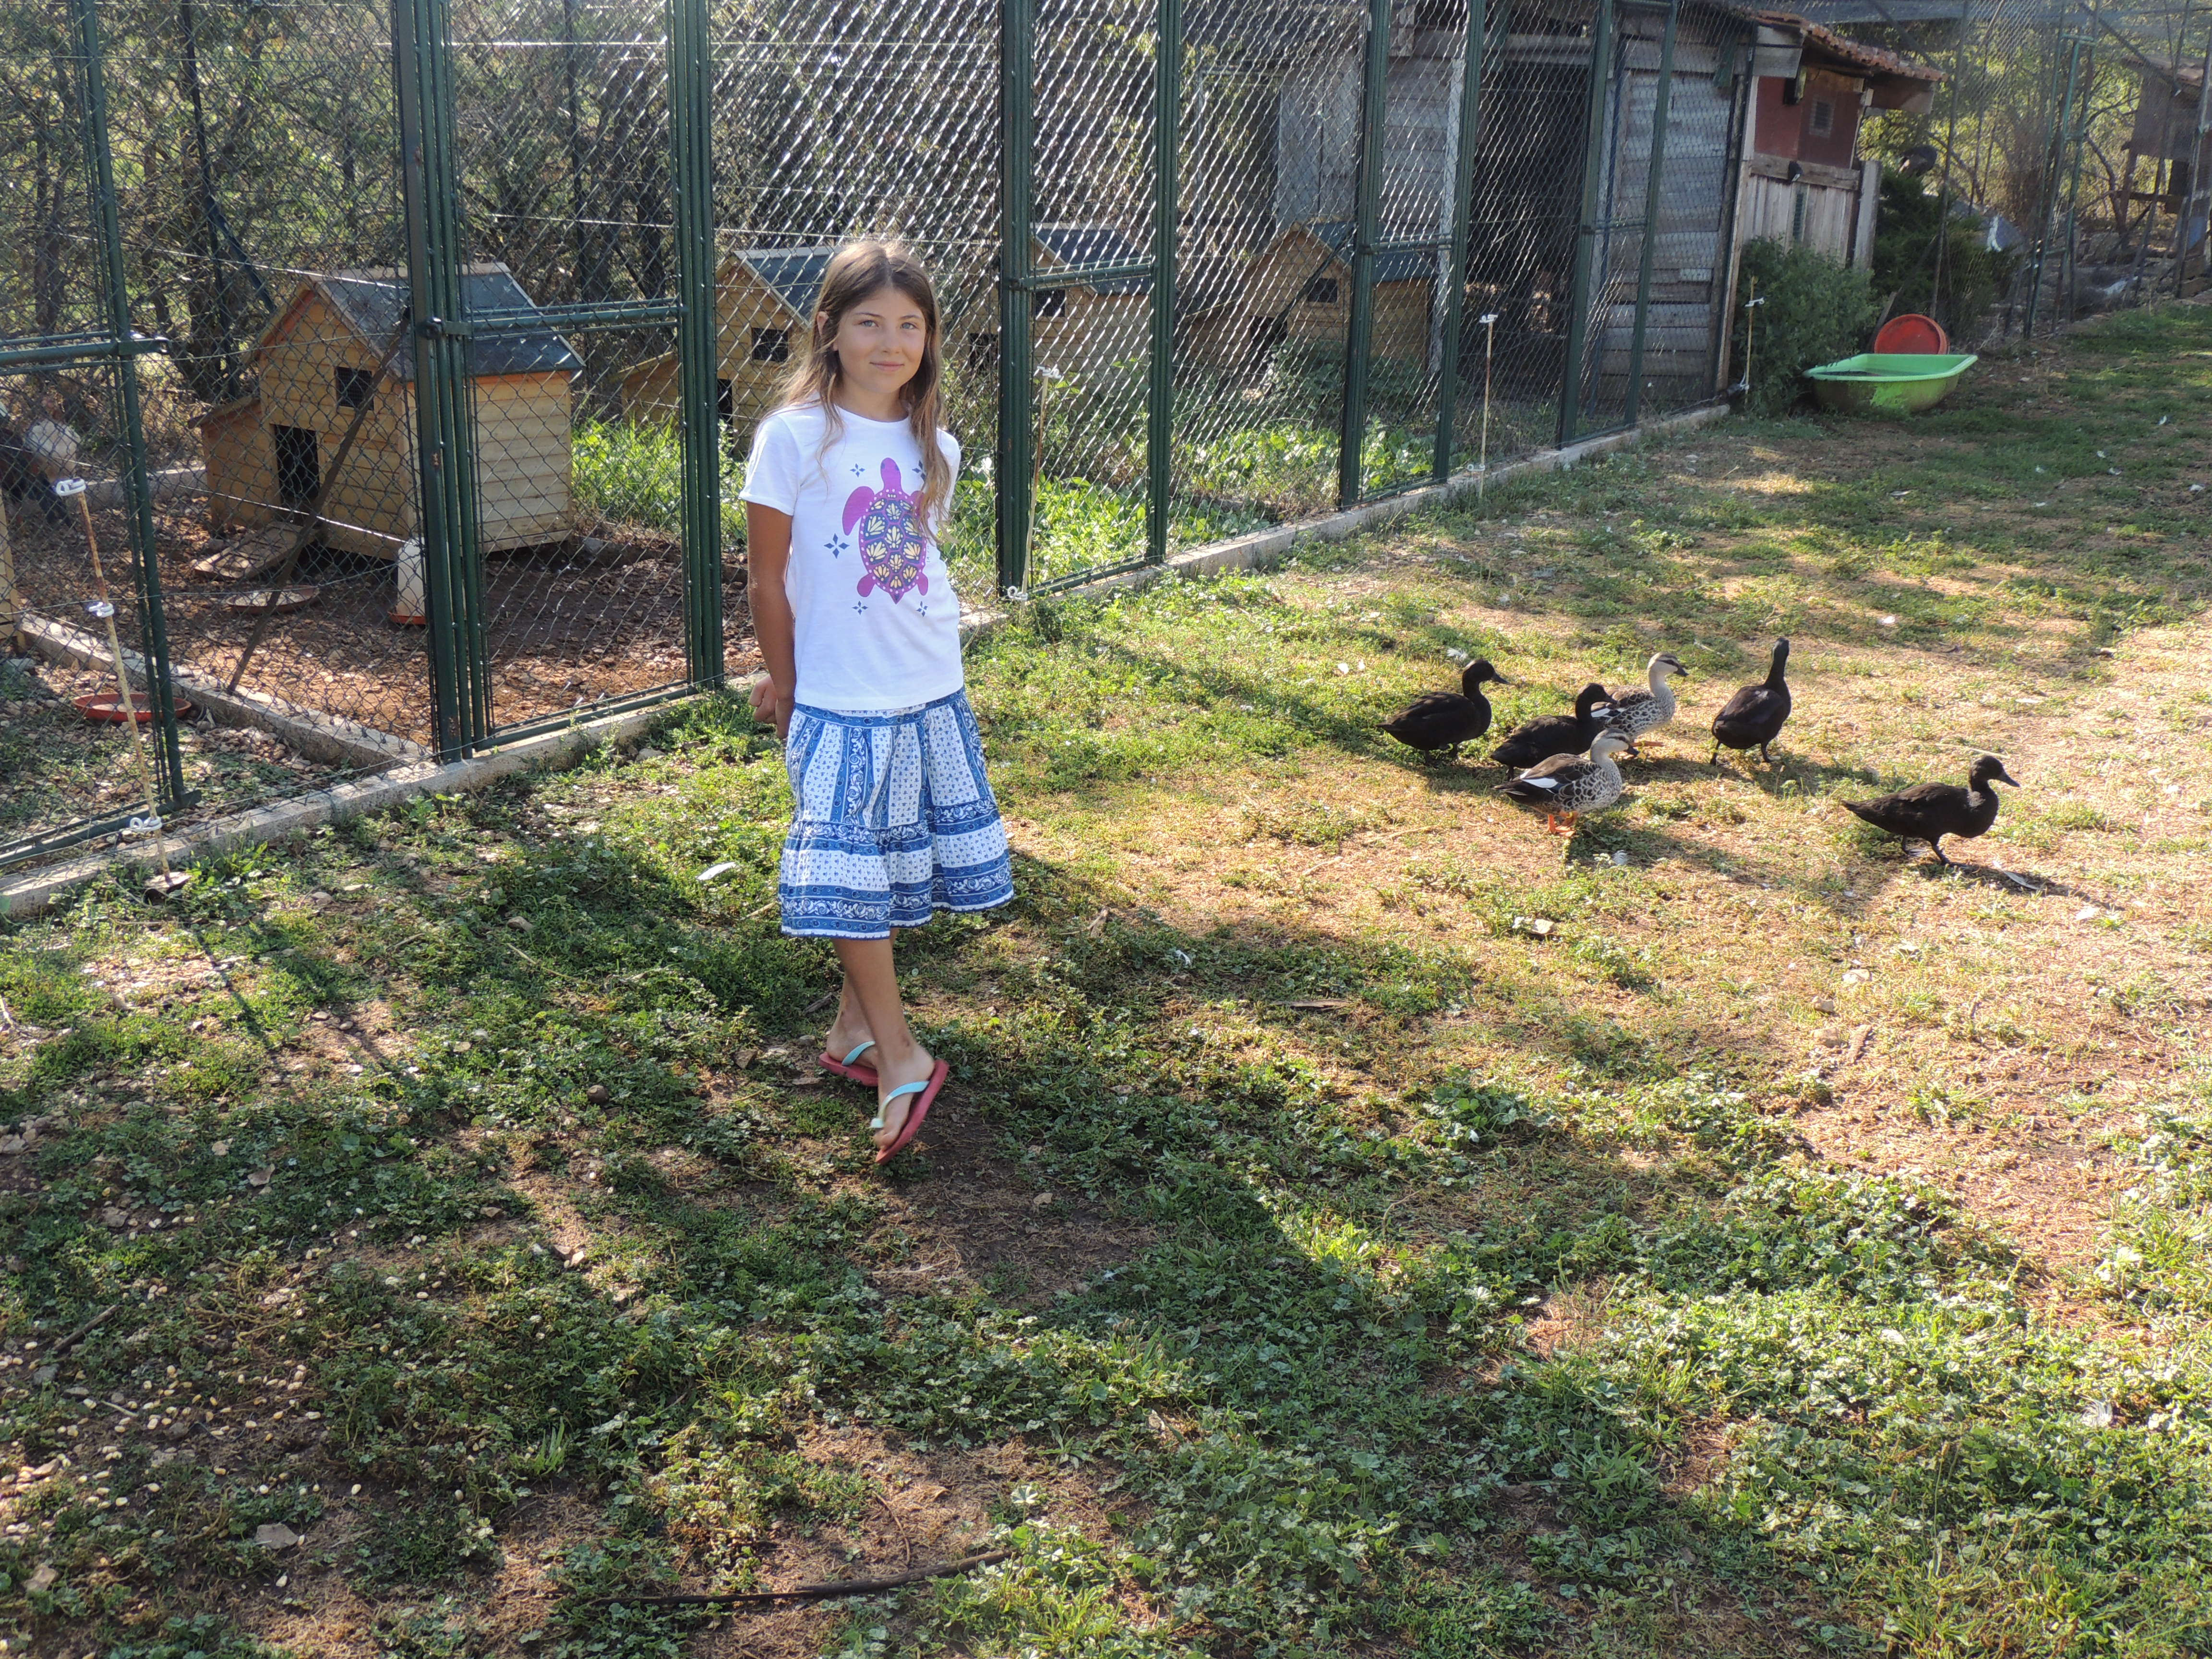 LF – Micaela and ducks